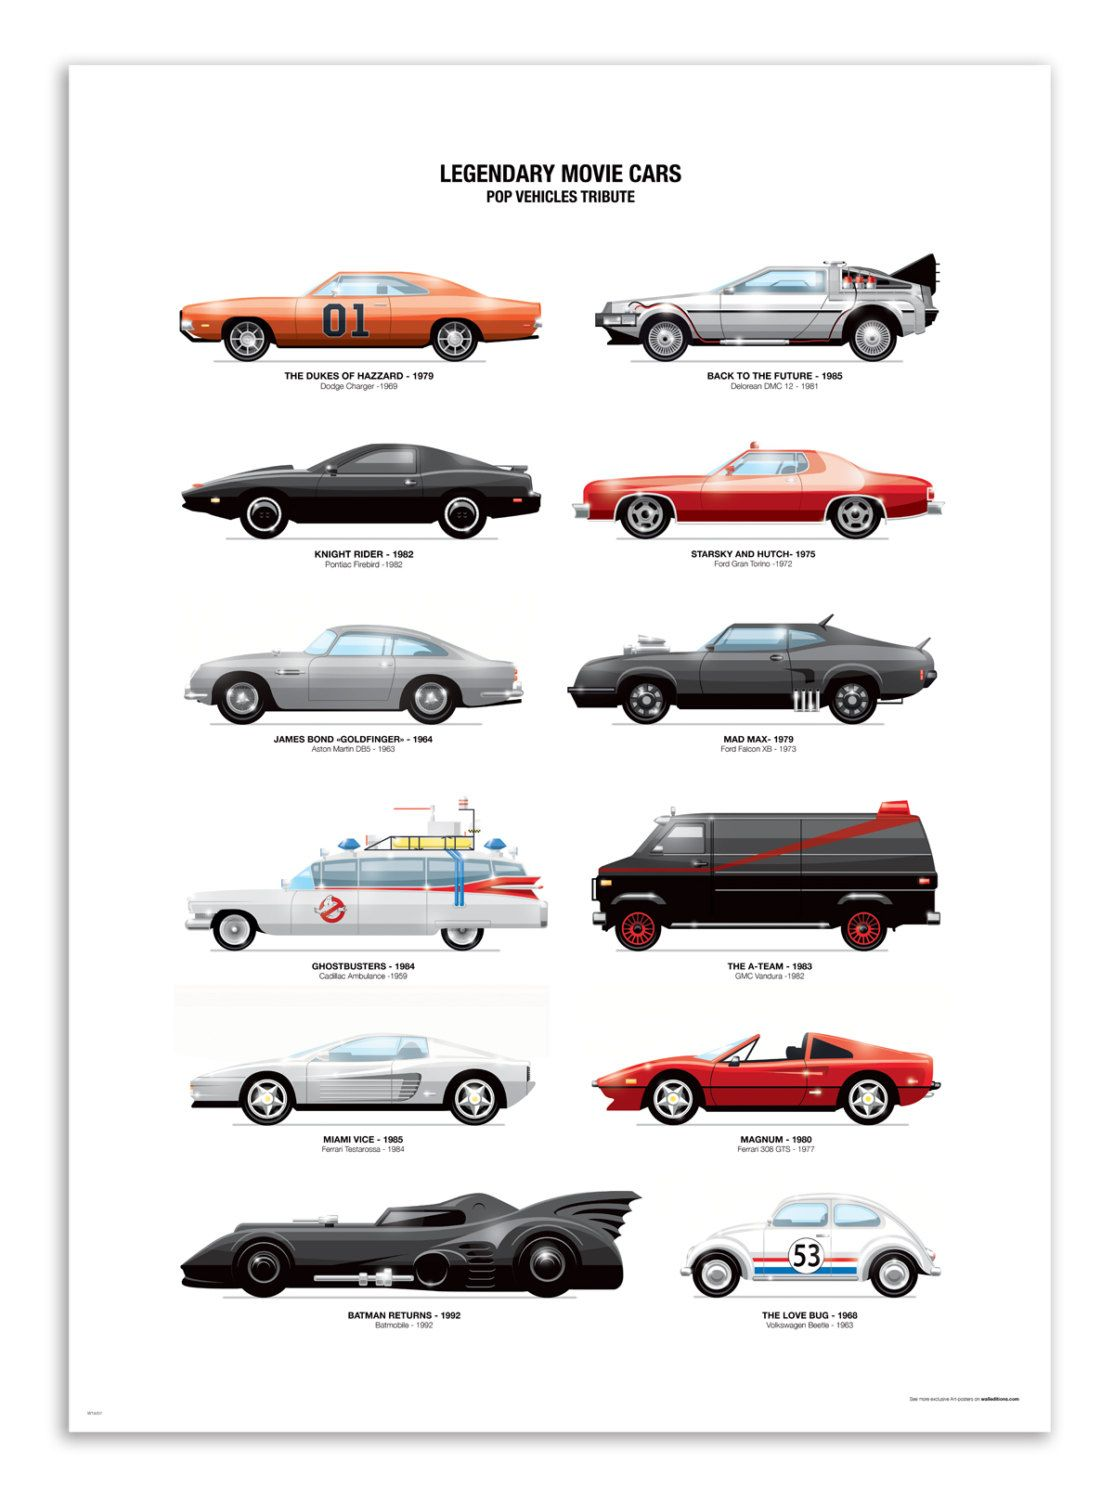 art poster 50 x 70 cm legandary movie cars voitures pinterest film voitures et moto. Black Bedroom Furniture Sets. Home Design Ideas